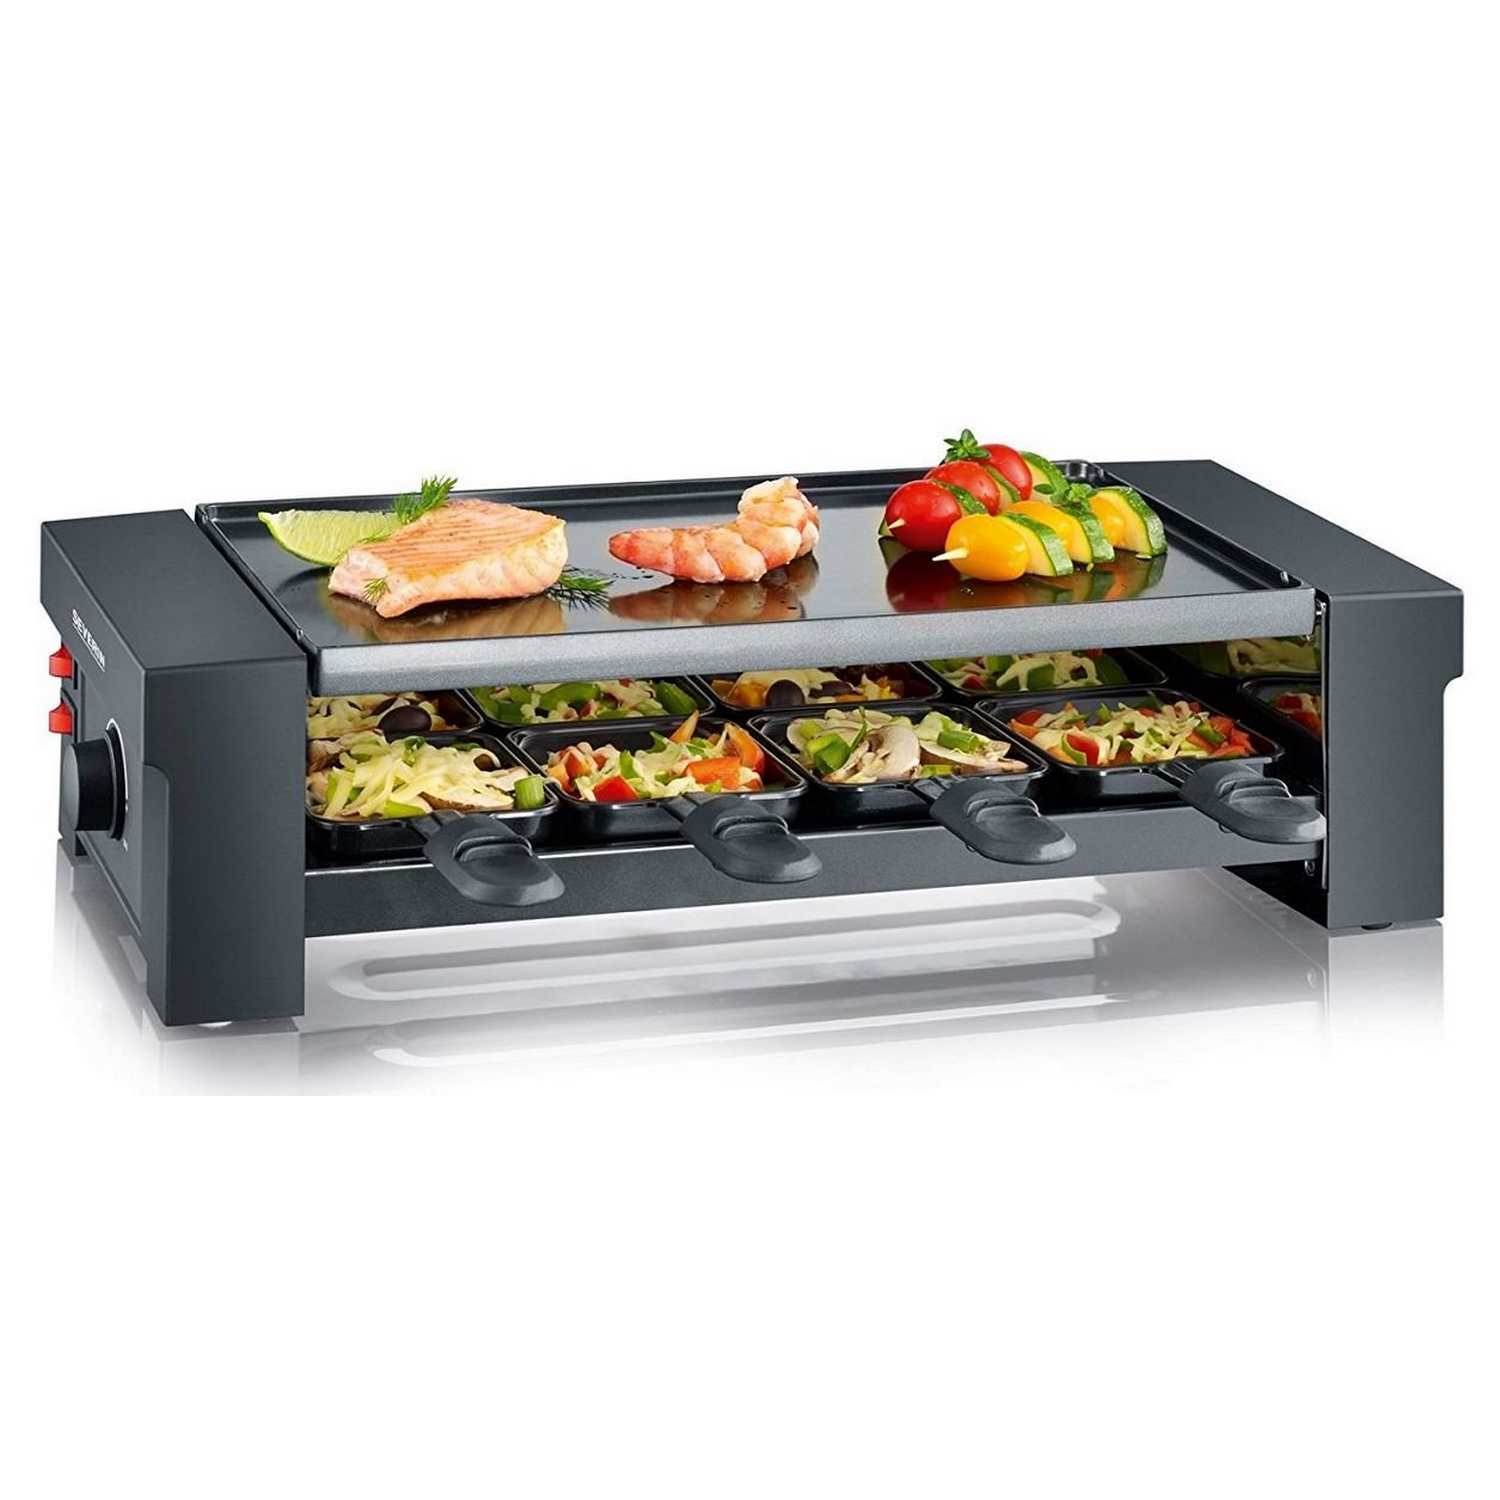 Severin RG2687 Pizza-Grill 8 PFÄNNCHEN, PIZZA- RACLETTE GRILL